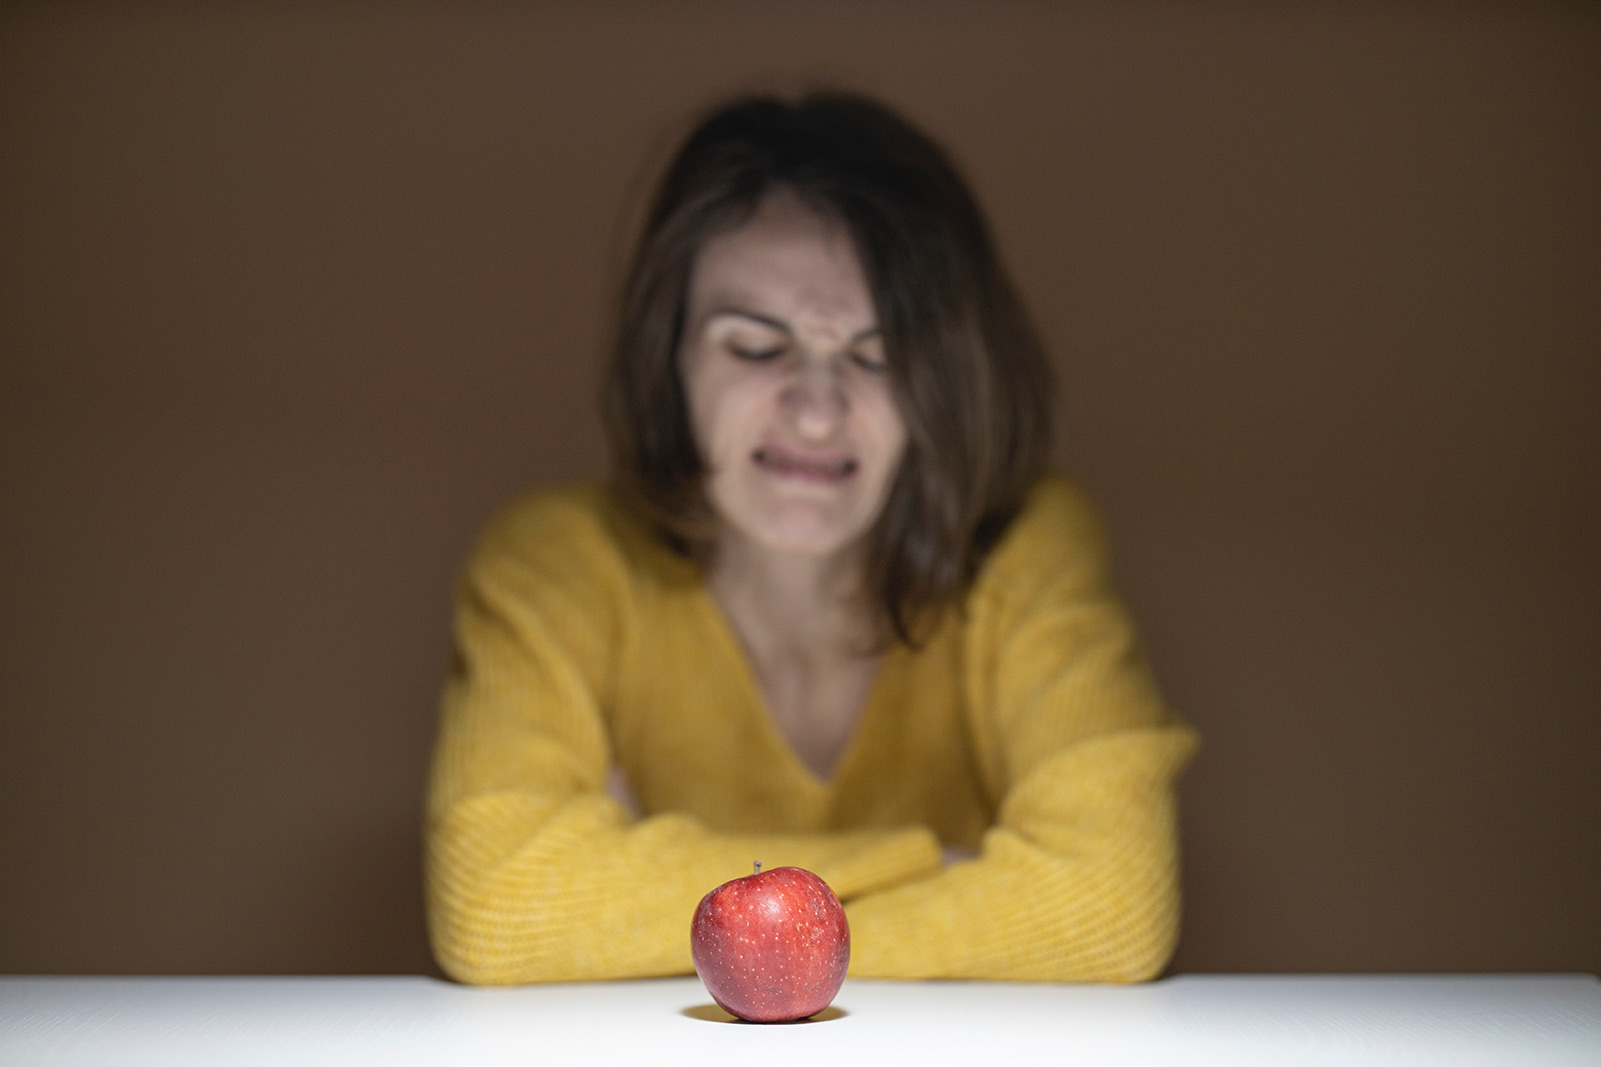 woman disgusted looking at apple